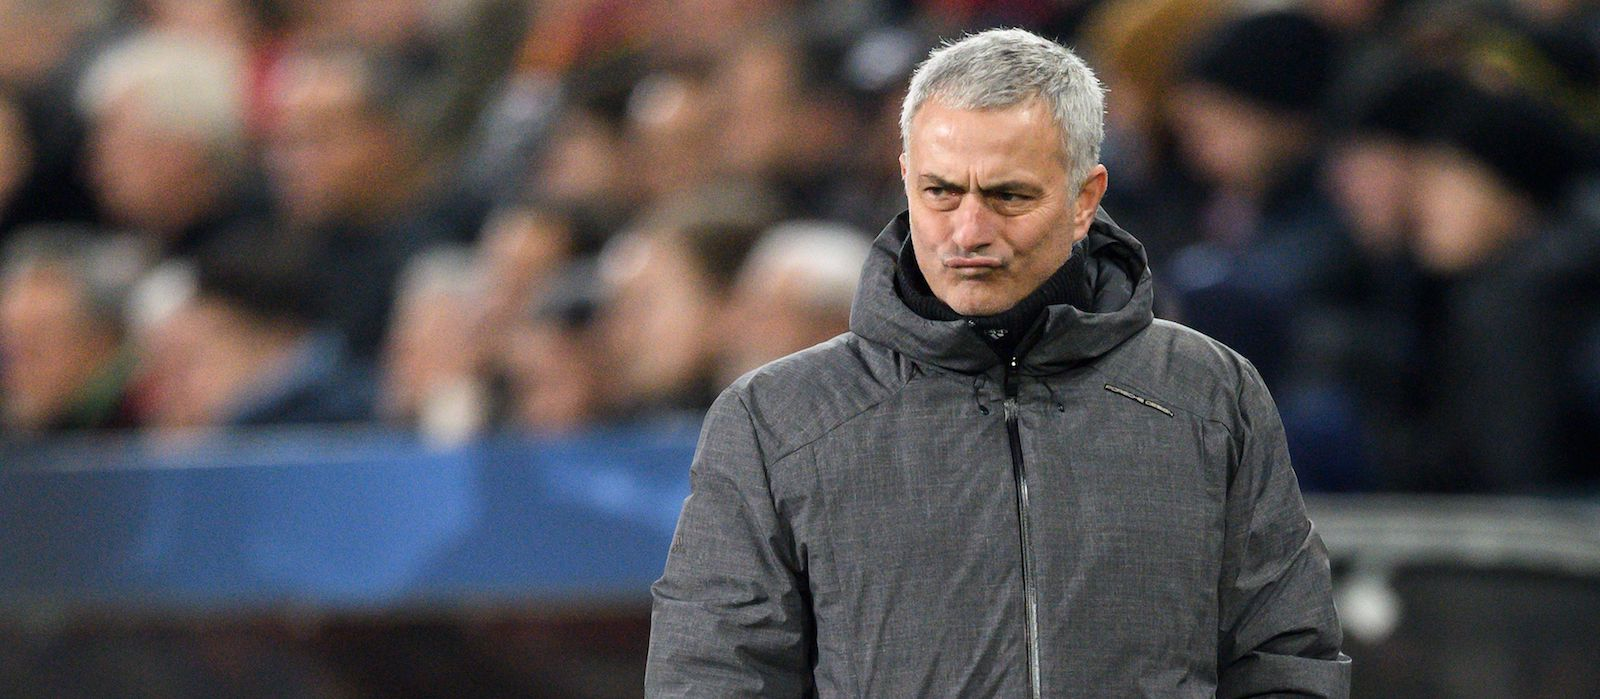 Jose Mourinho cites wasteful possession as reason for Manchester United throwing away lead vs Leicester